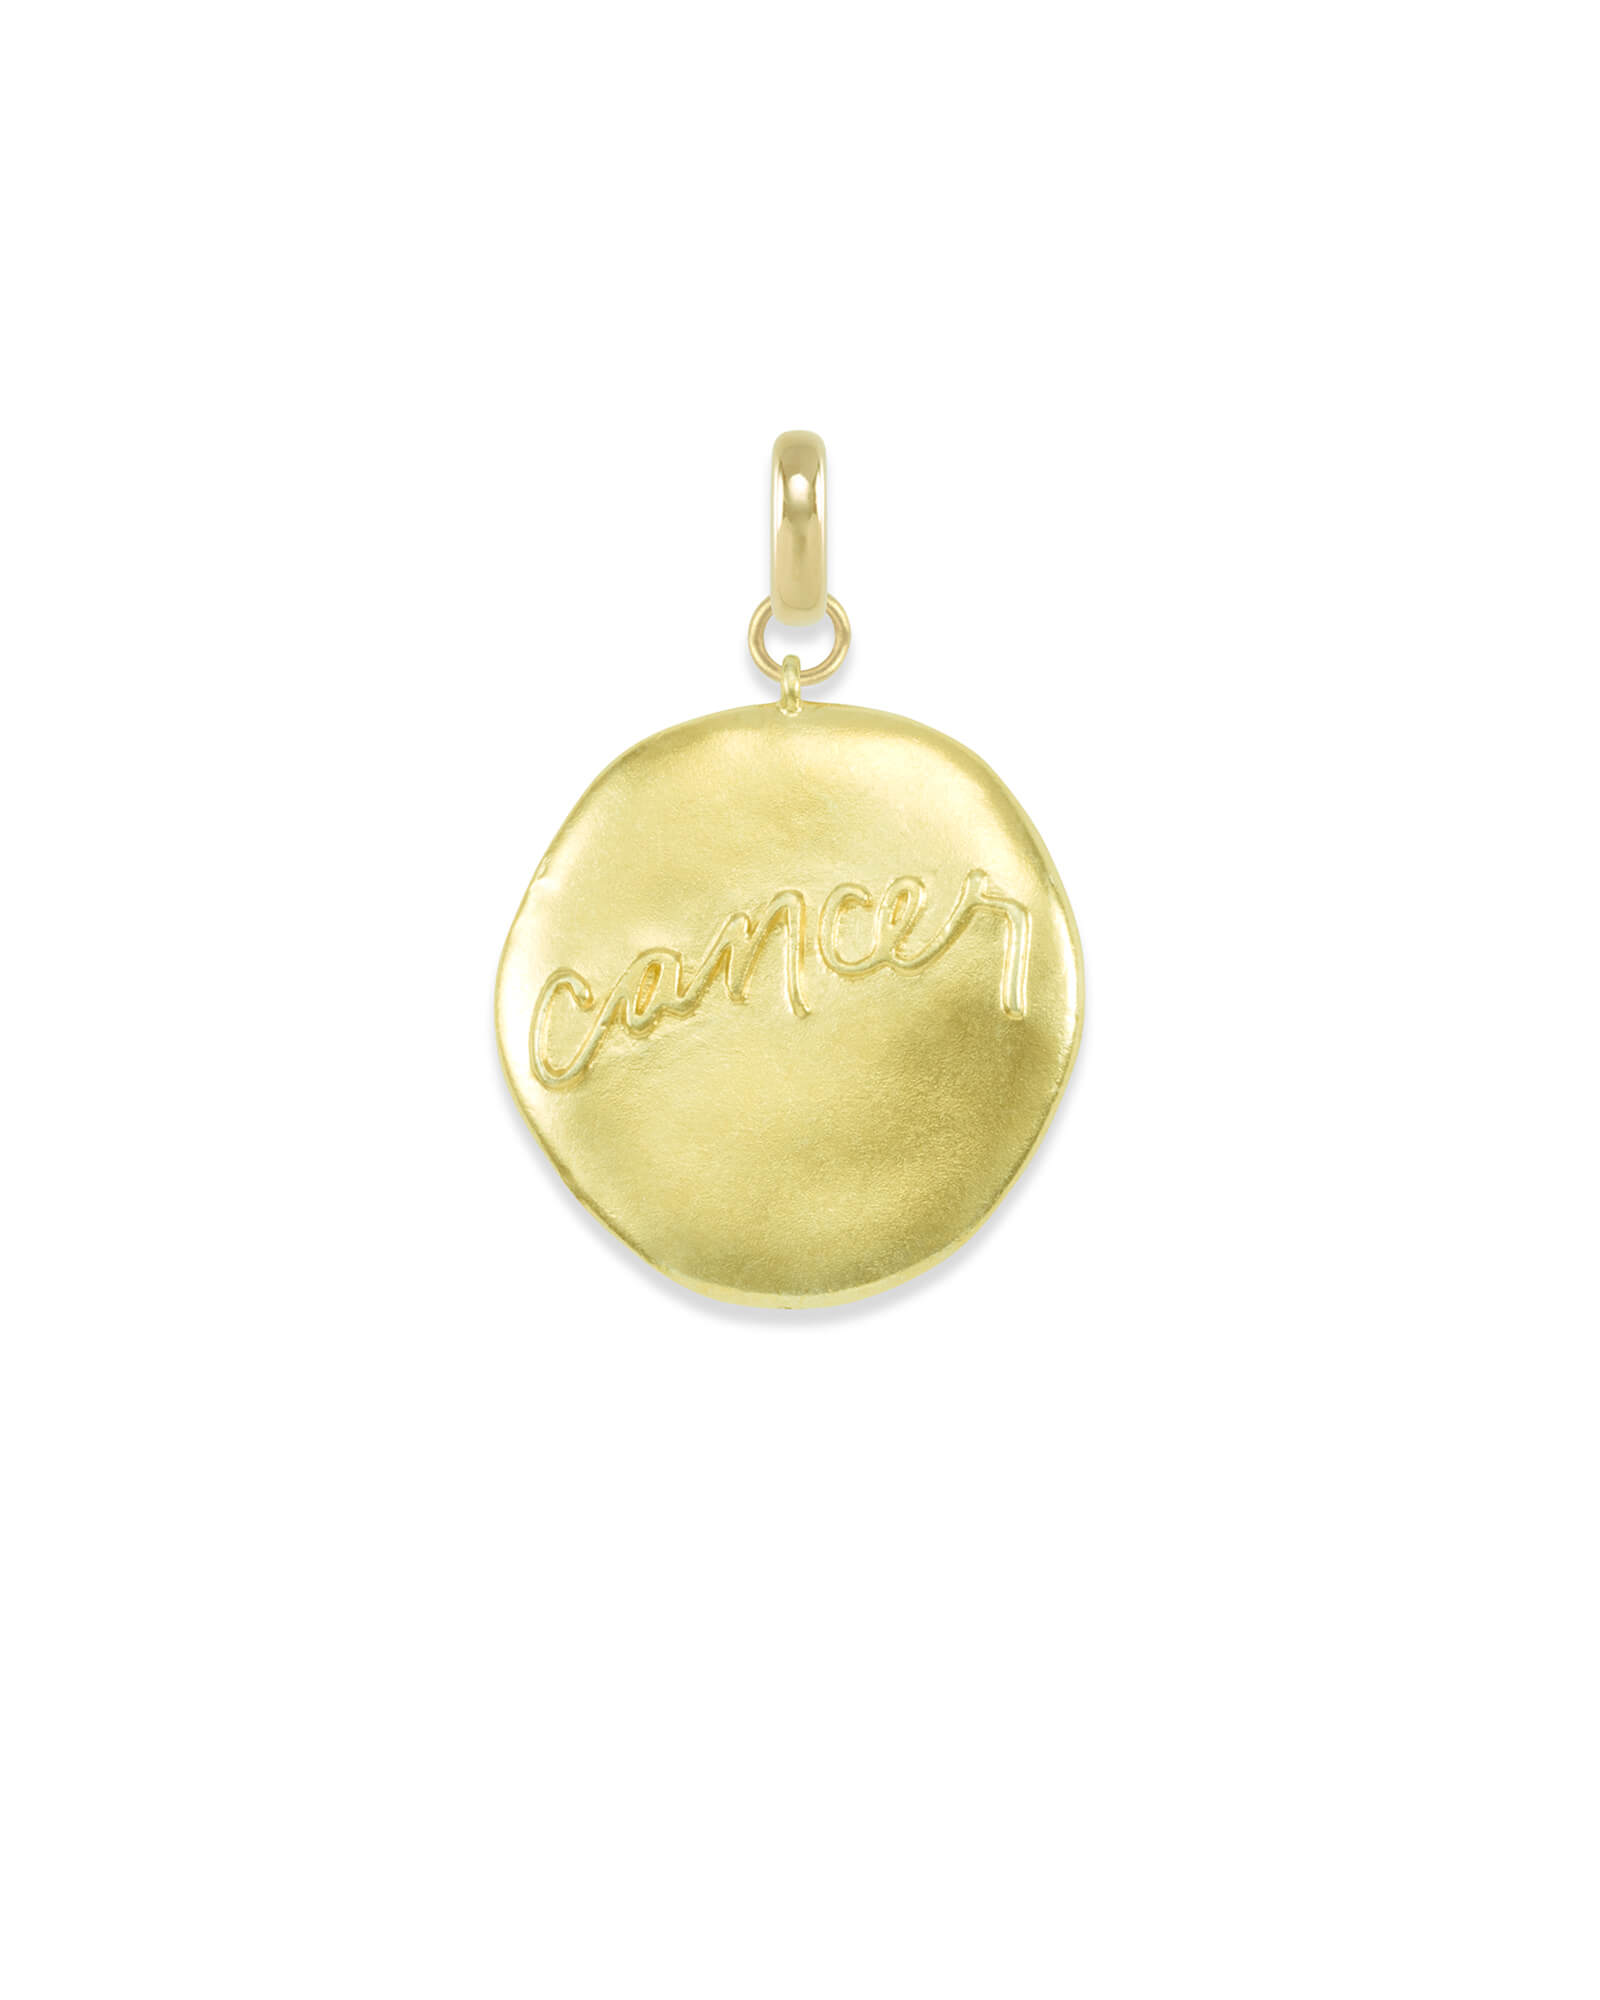 Cancer Coin Charm in Gold